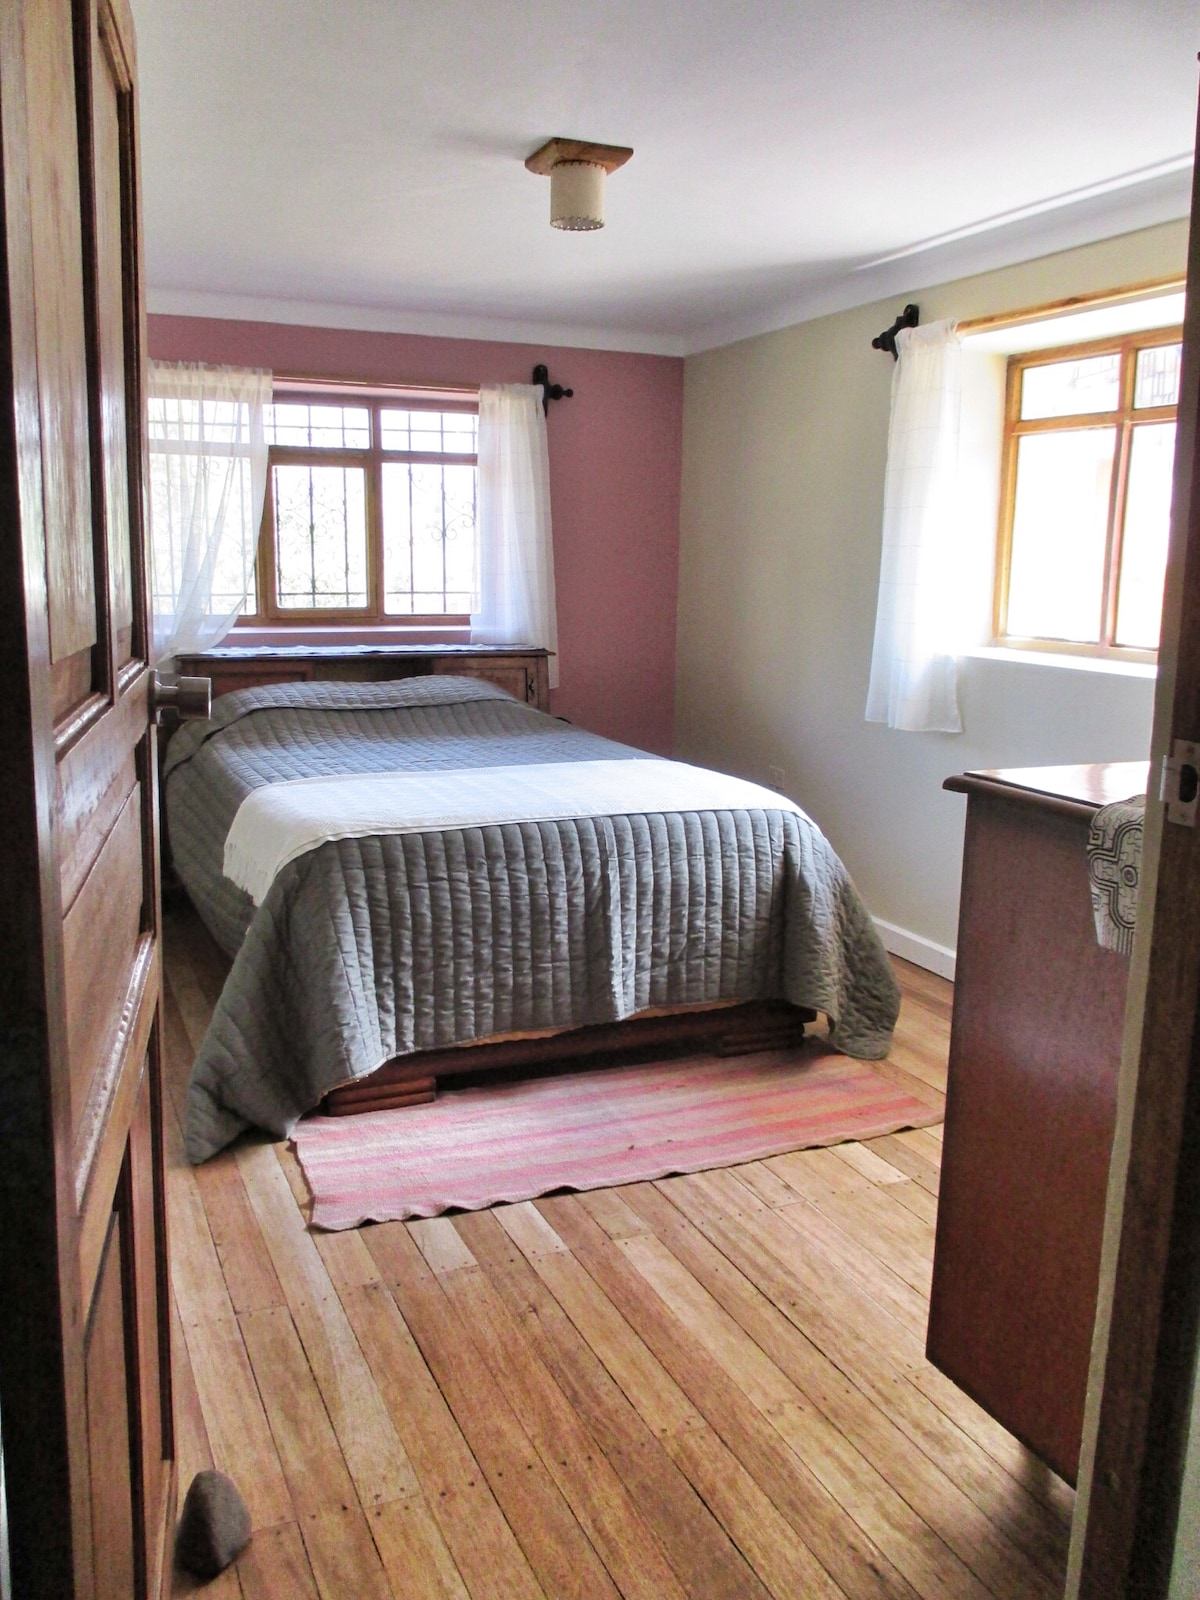 Double private room on the second floor. We have lots of storage for long term guests.